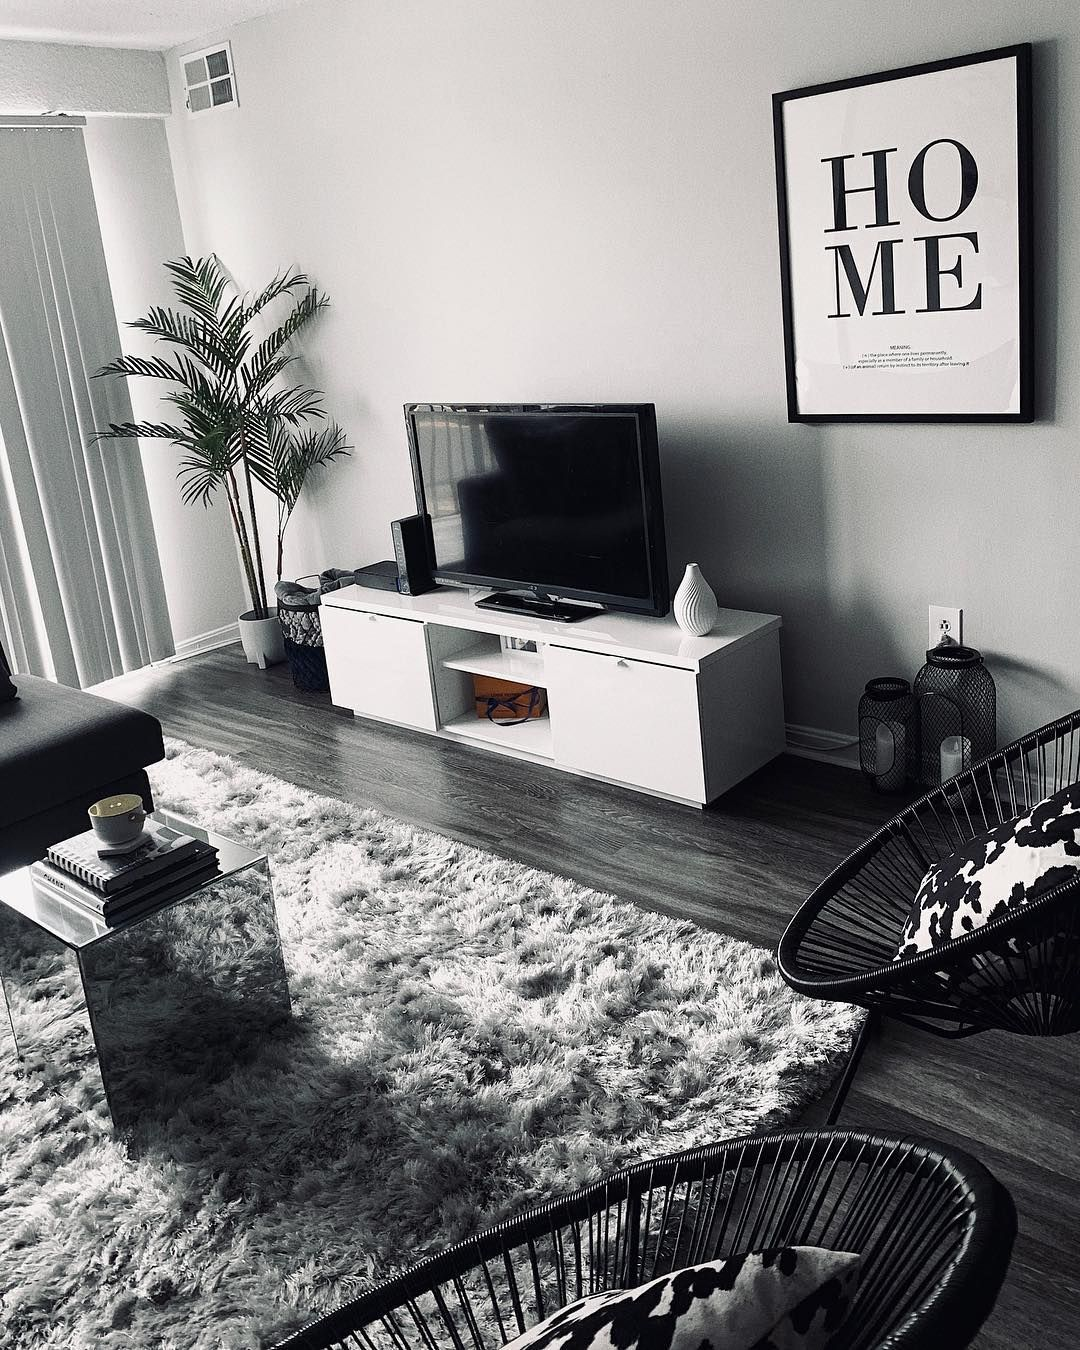 La Maison Link In My Bio To See My Apartment Tour Living Room Decor Apartment First Apartment Decorating Small Apartment Living Room